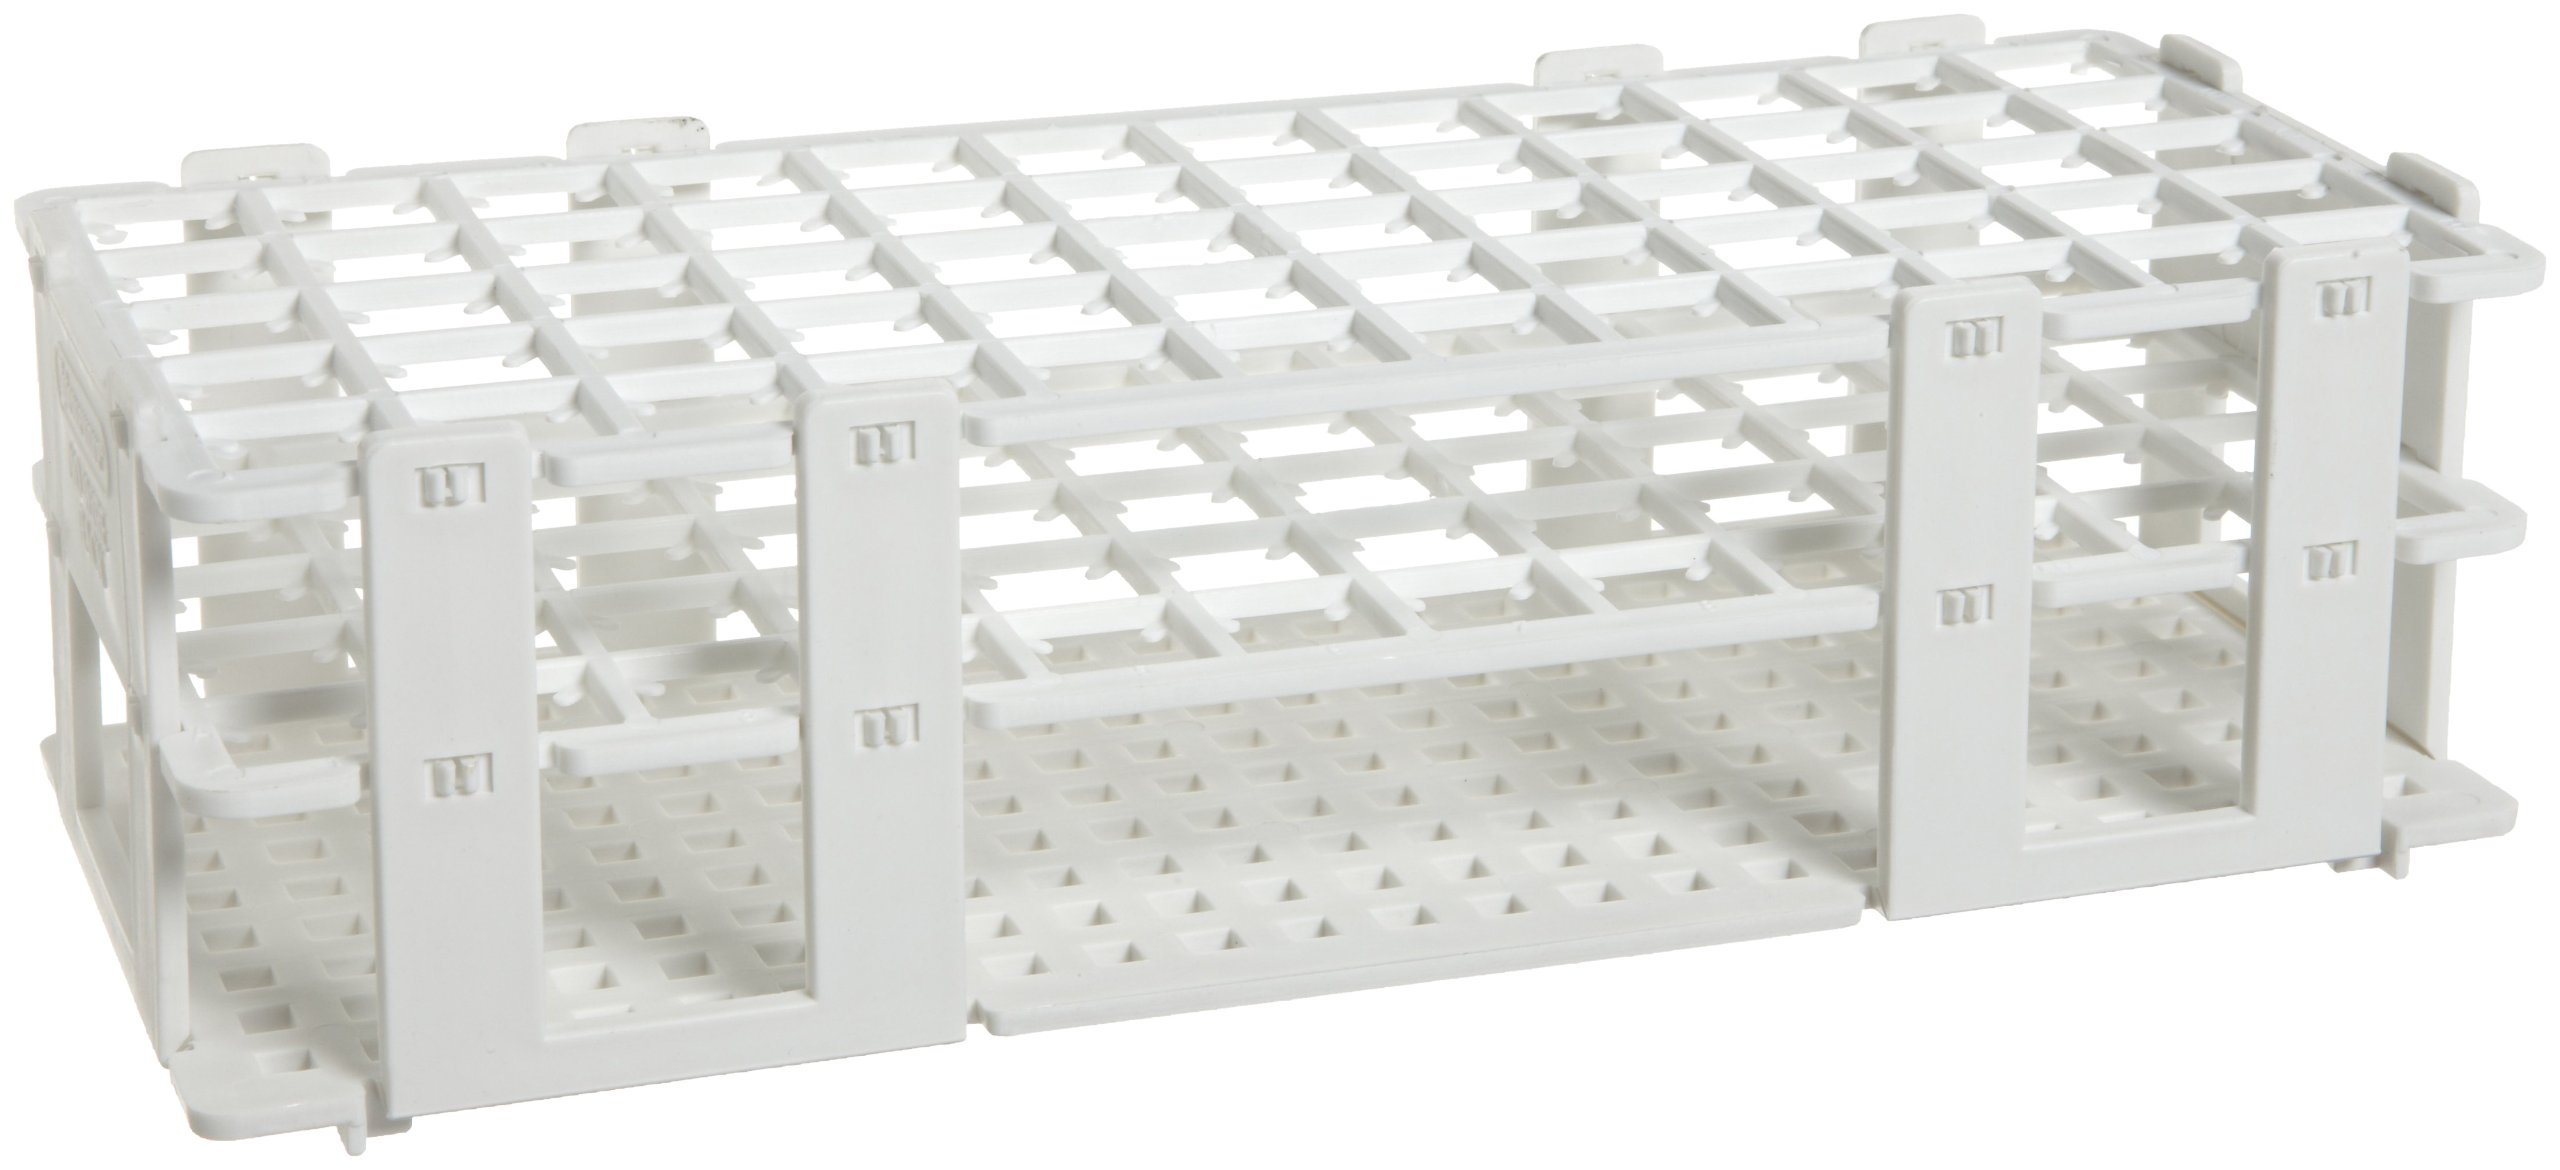 Bel-Art F18749-0001 No-Wire Test Tube Grip Rack; 15-16mm, 60 Places, 9³/₄ x 4¹/₈ x 2³/₄ in., Polypropylene